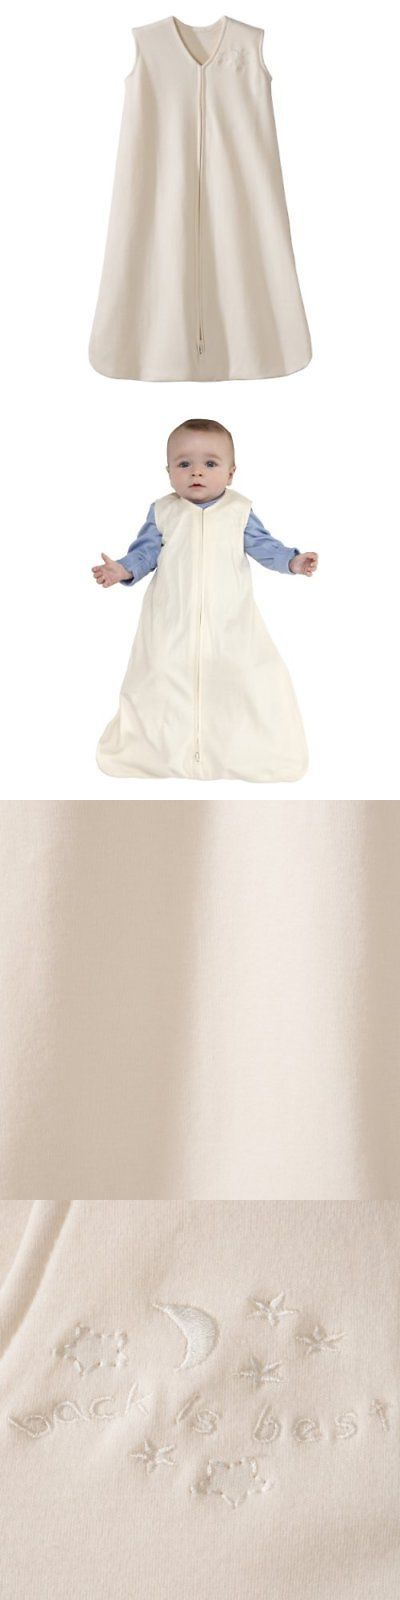 Sleeping Bags and Sleepsacks 100989: Halo Sleepsack 100% Cotton Wearable Blanket Cream Medium Sleeping Bags Nursery -> BUY IT NOW ONLY: $30.89 on eBay!